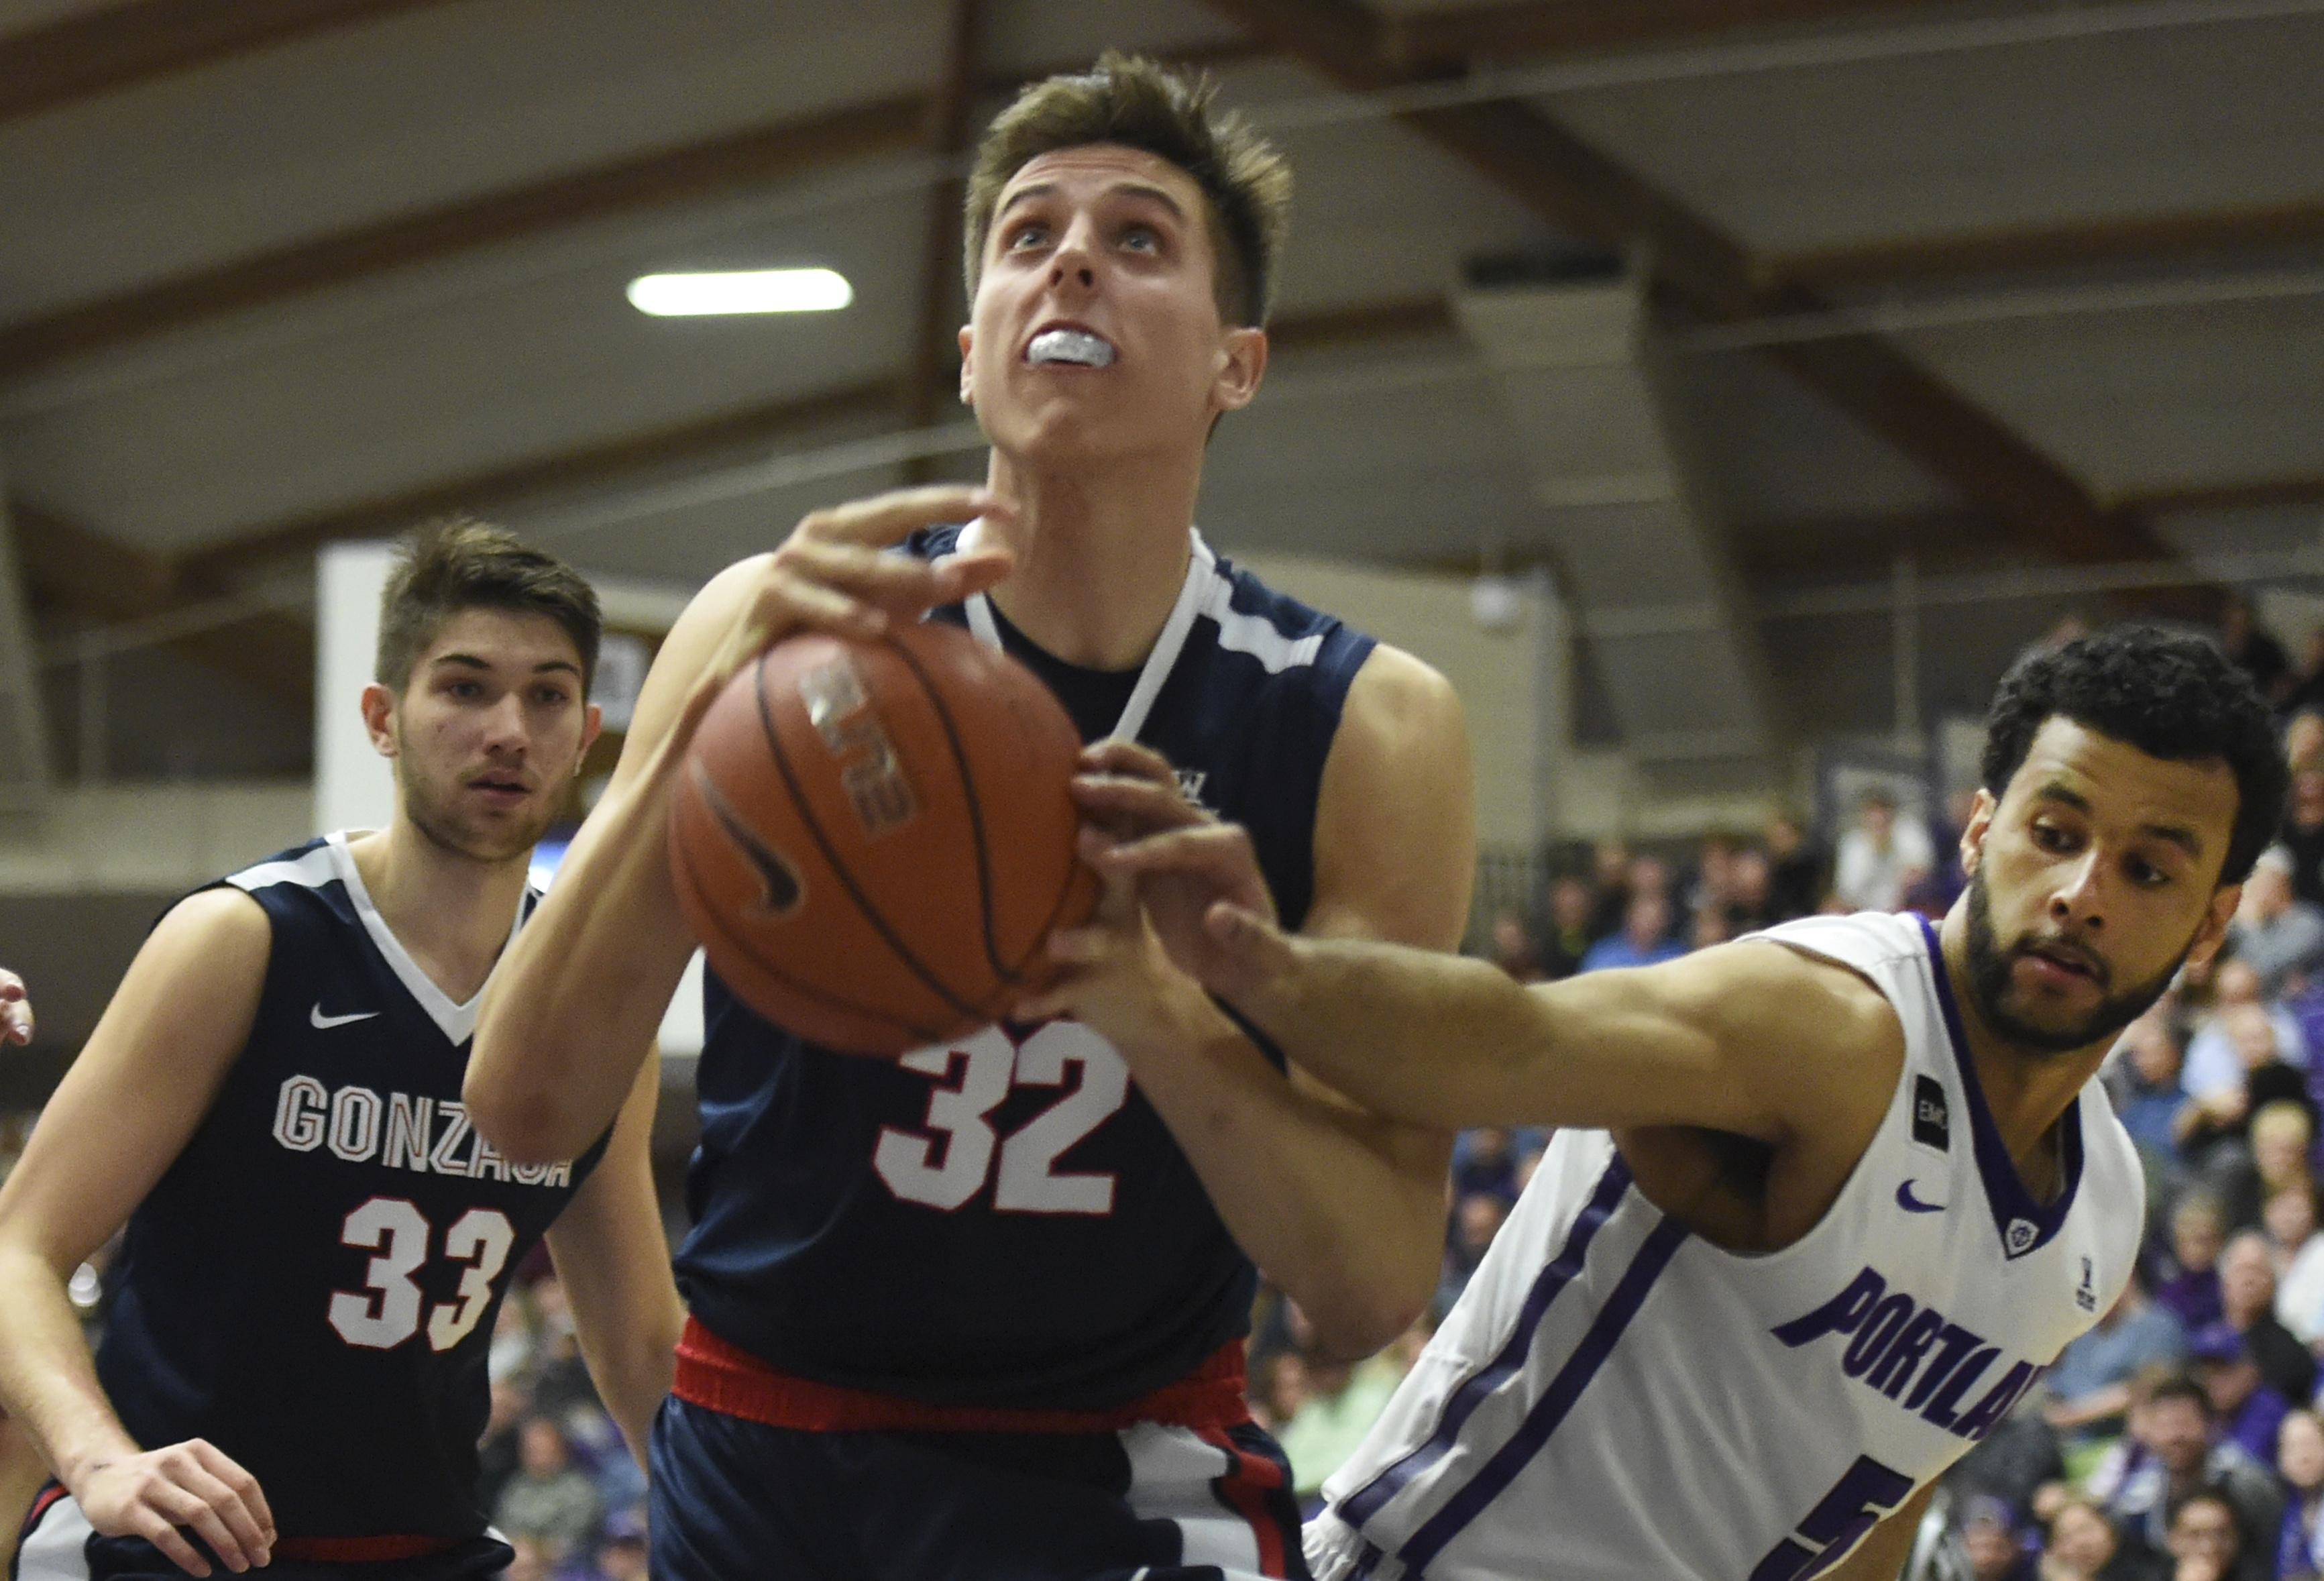 Gonzaga Forward Zach Collins Drives To The Basket In Portland Monday Jan 23